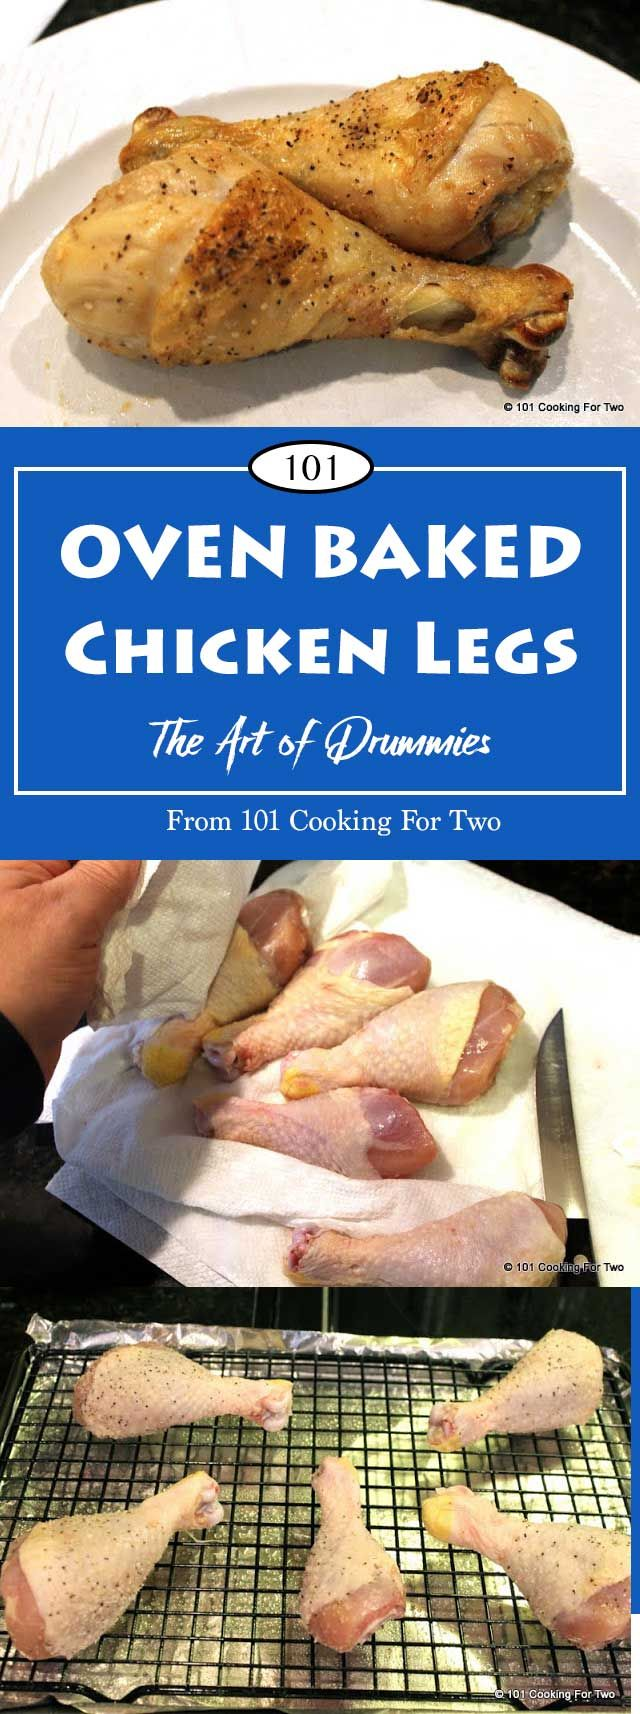 This is about as easy as a recipe can get. Just pat dry the drumsticks, spice and cook in a high oven. Then you will have crispy goodness for the family. via @drdan101cft